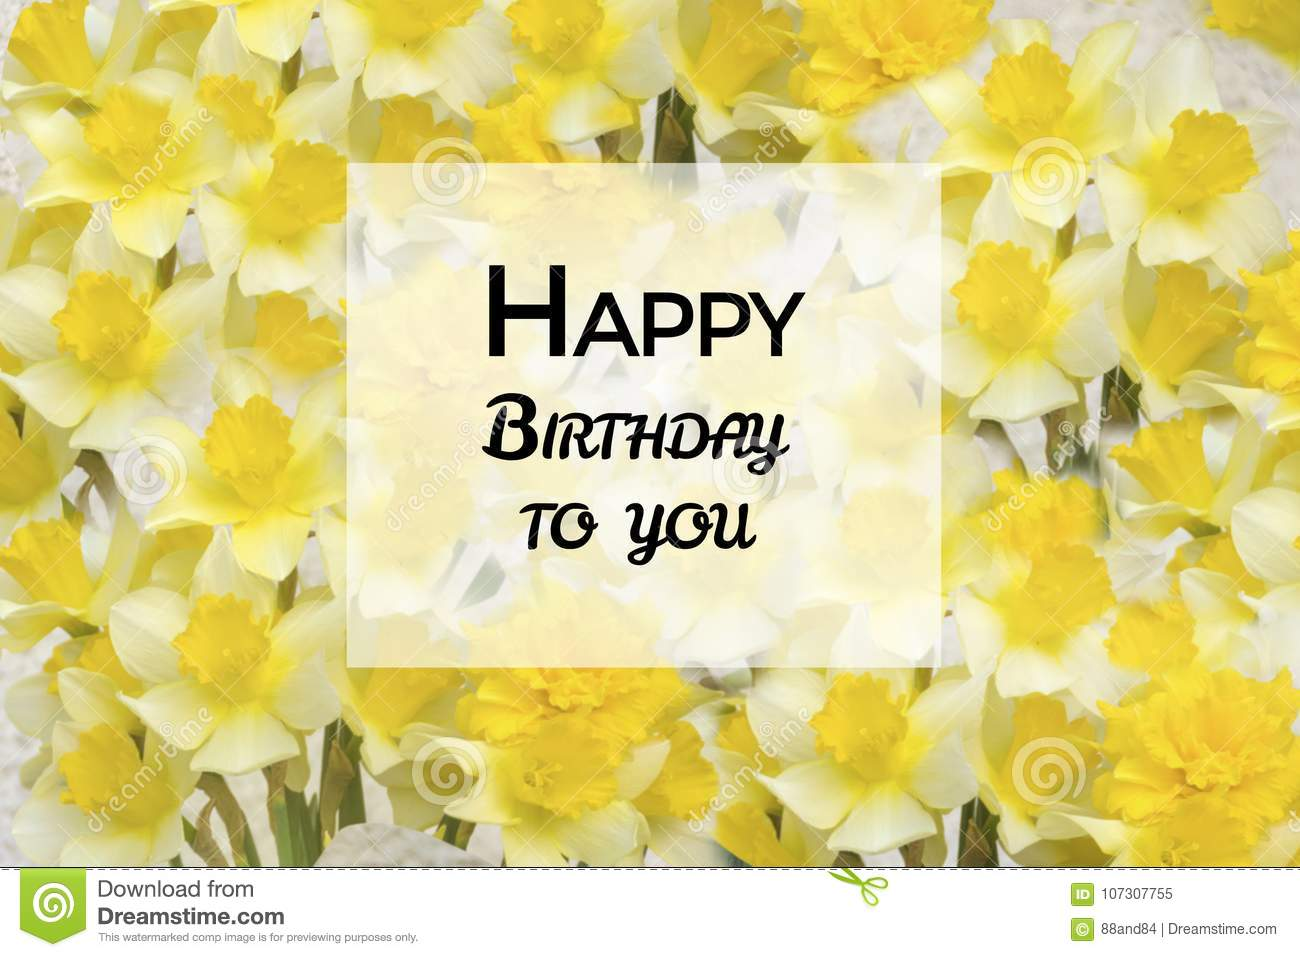 Happy Birthday Greeting Card With Narcissus Flowers Background Stock